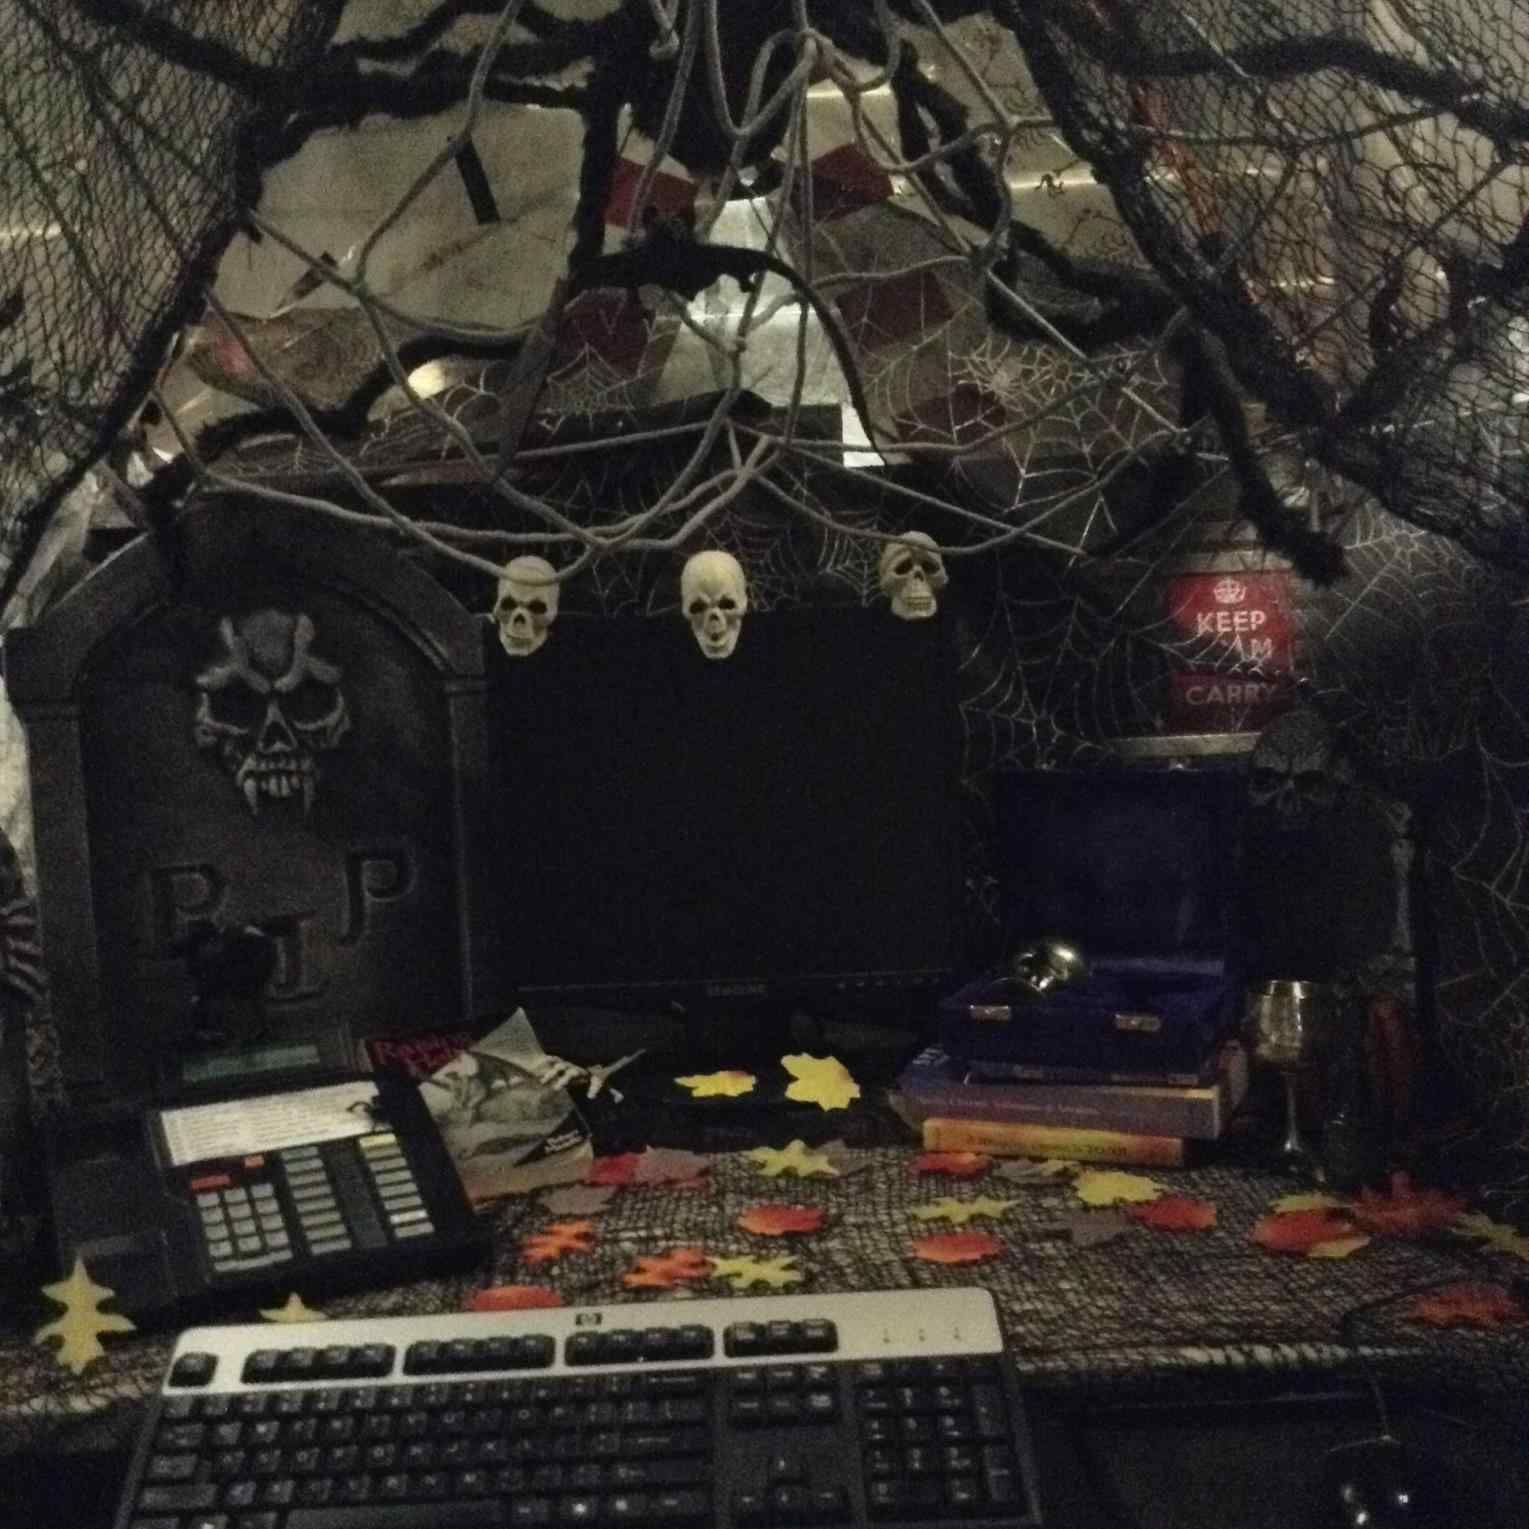 Amazing Cheap And Scary Halloween Decorations Ideas Breakpr Office Halloween Decorations Halloween Office Scary Halloween Decorations